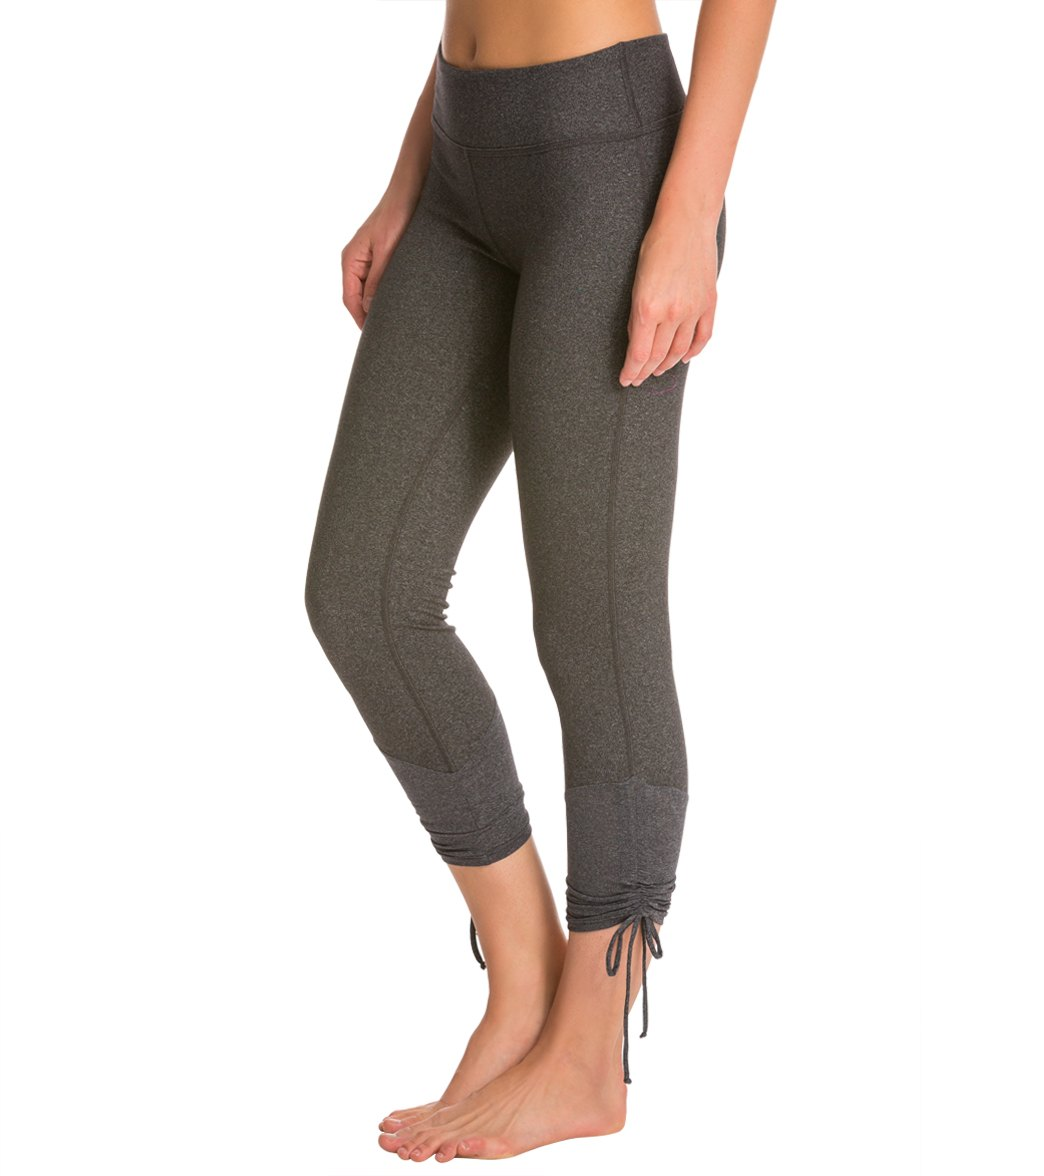 cde5bf53c42c58 Beyond Yoga Ethereal Shirred Ankle-Tie Legging at YogaOutlet.com